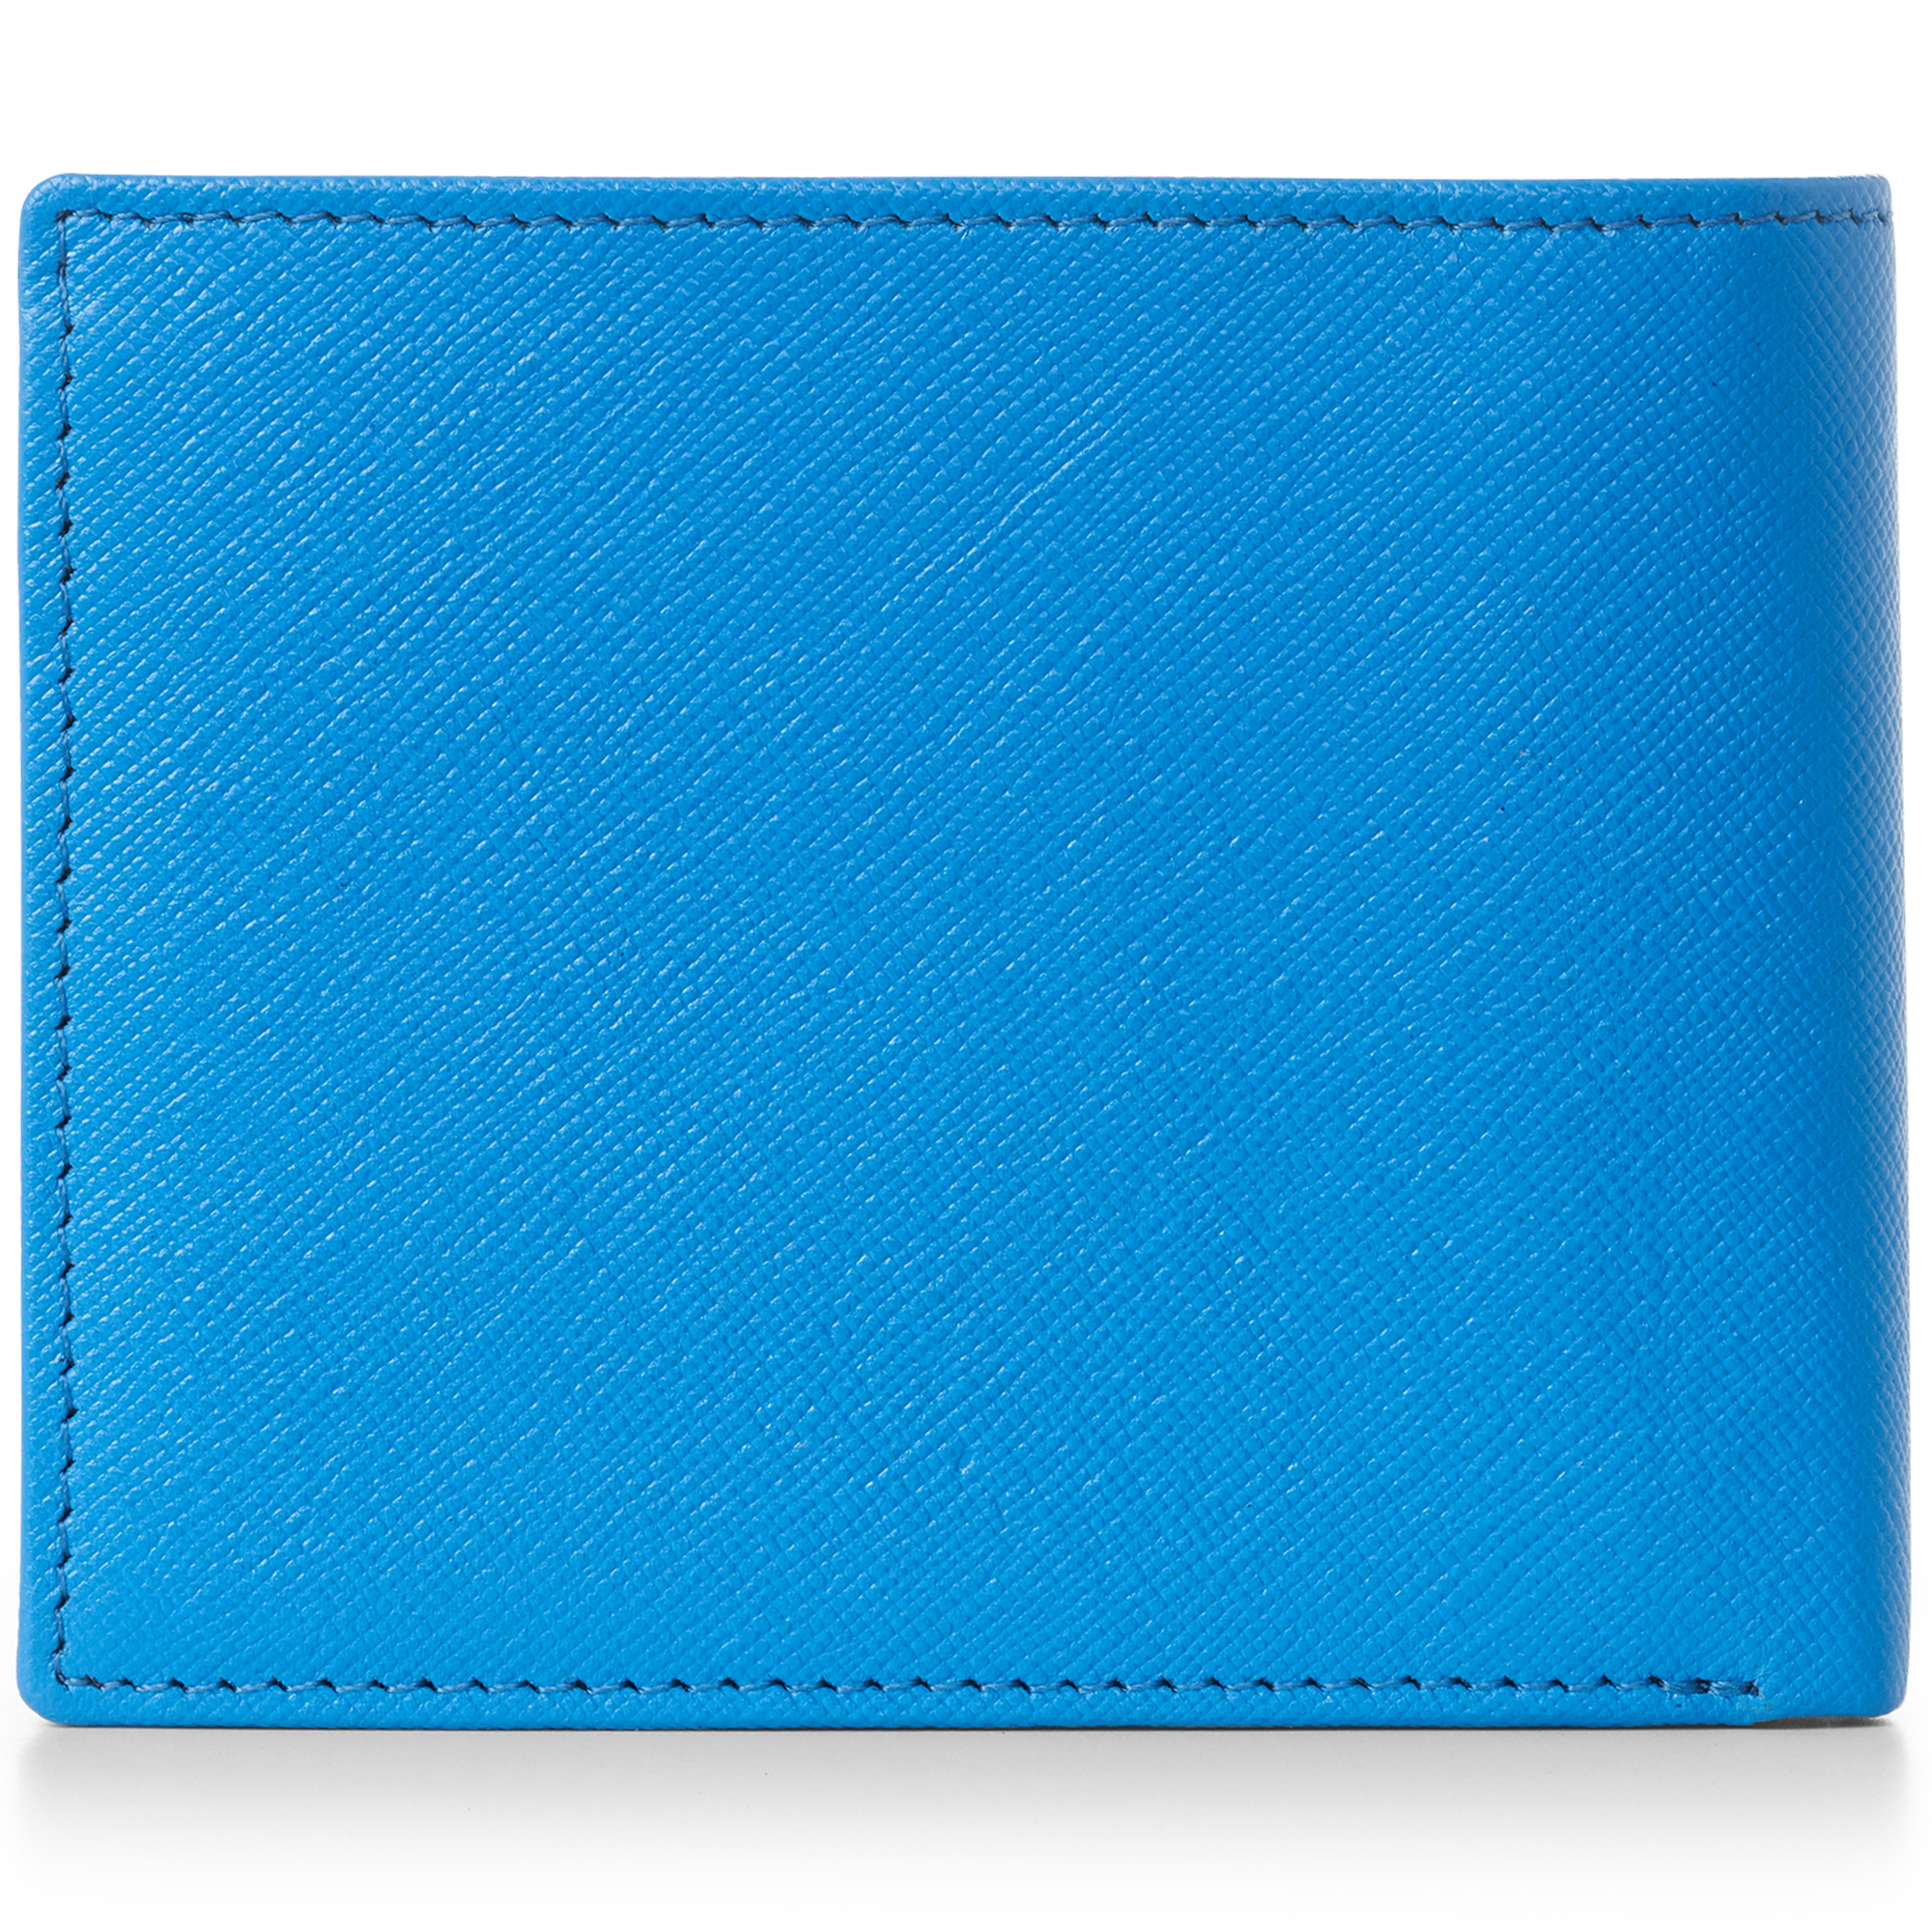 miniature 37 - Alpine-Swiss-RFID-Mens-Wallet-Deluxe-Capacity-Passcase-Bifold-Two-Bill-Sections